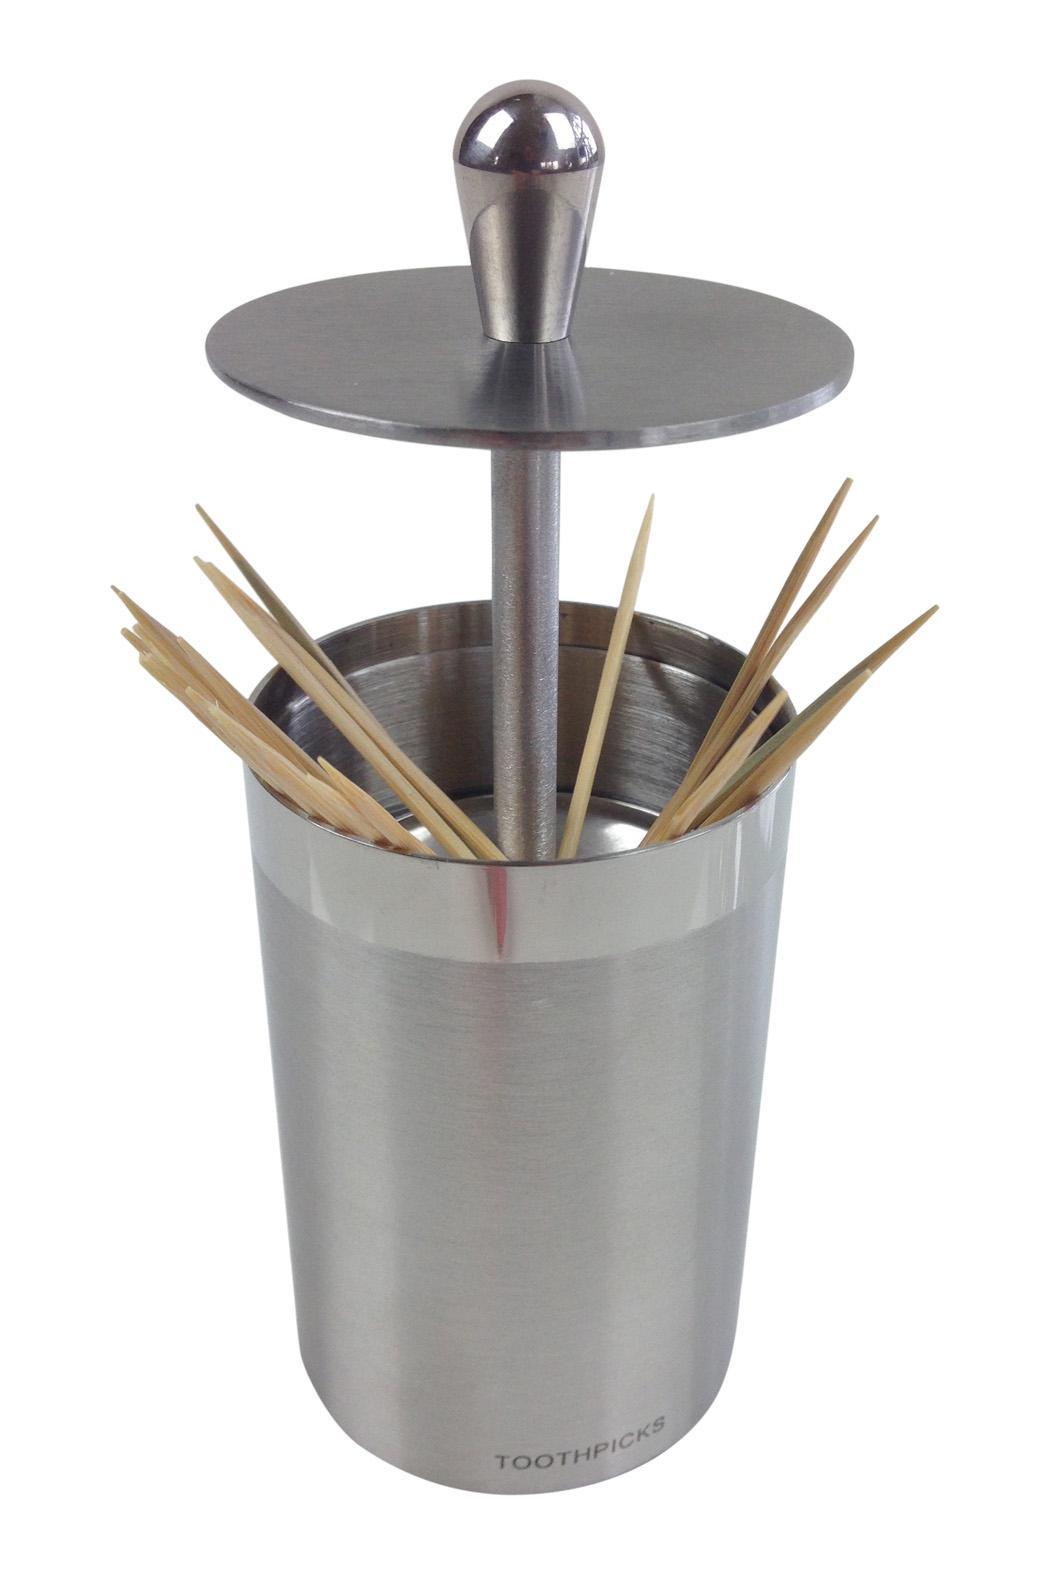 Toothpick Holders Ghome2 Stainless Steel Toothpick Holder From Minneapolis